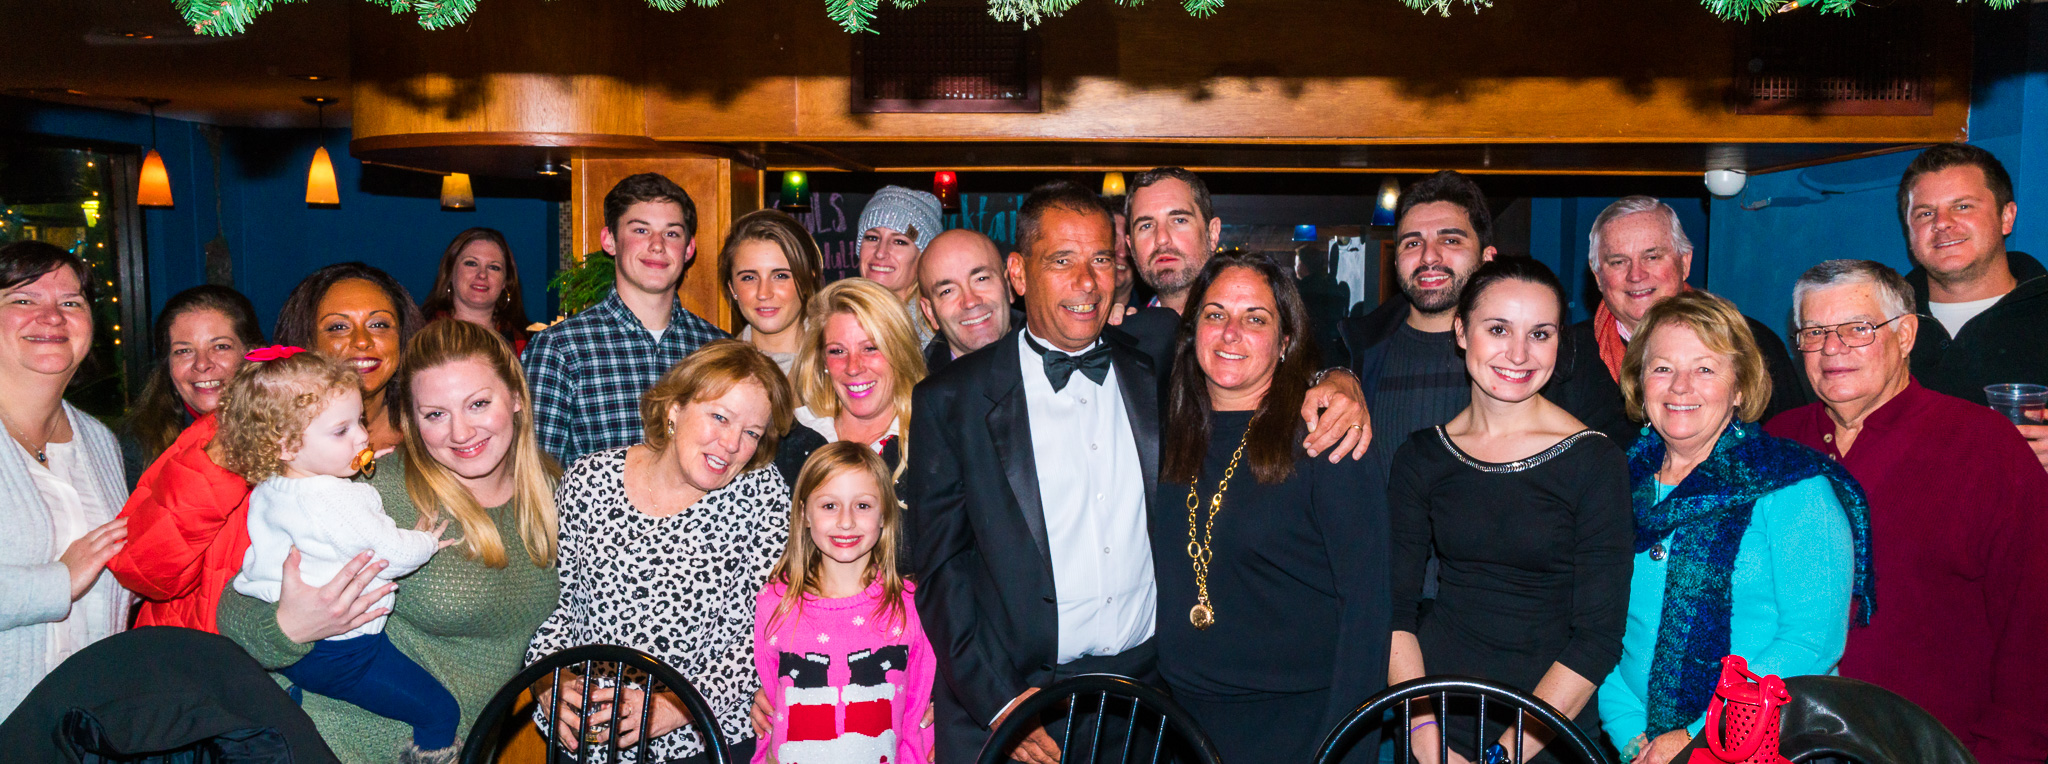 north-street-grille-party-dec-2016-75